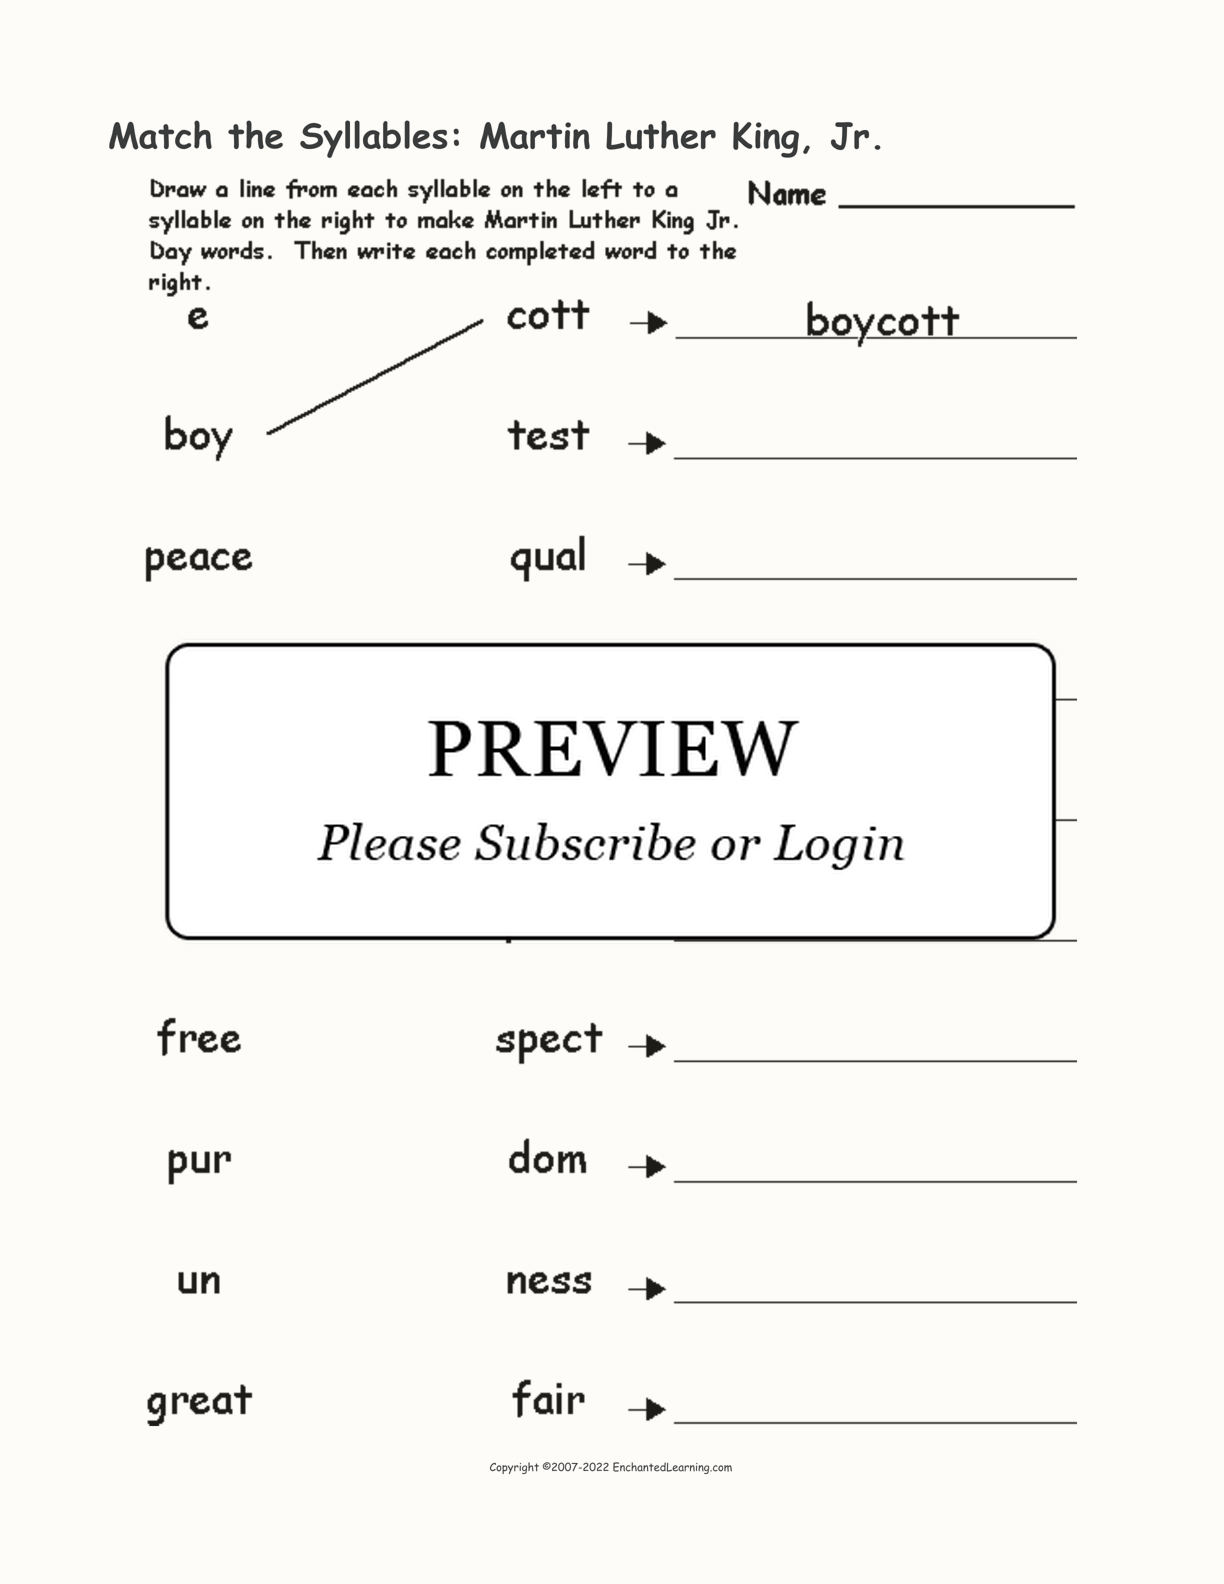 Match the Syllables: Martin Luther King, Jr. interactive worksheet page 1